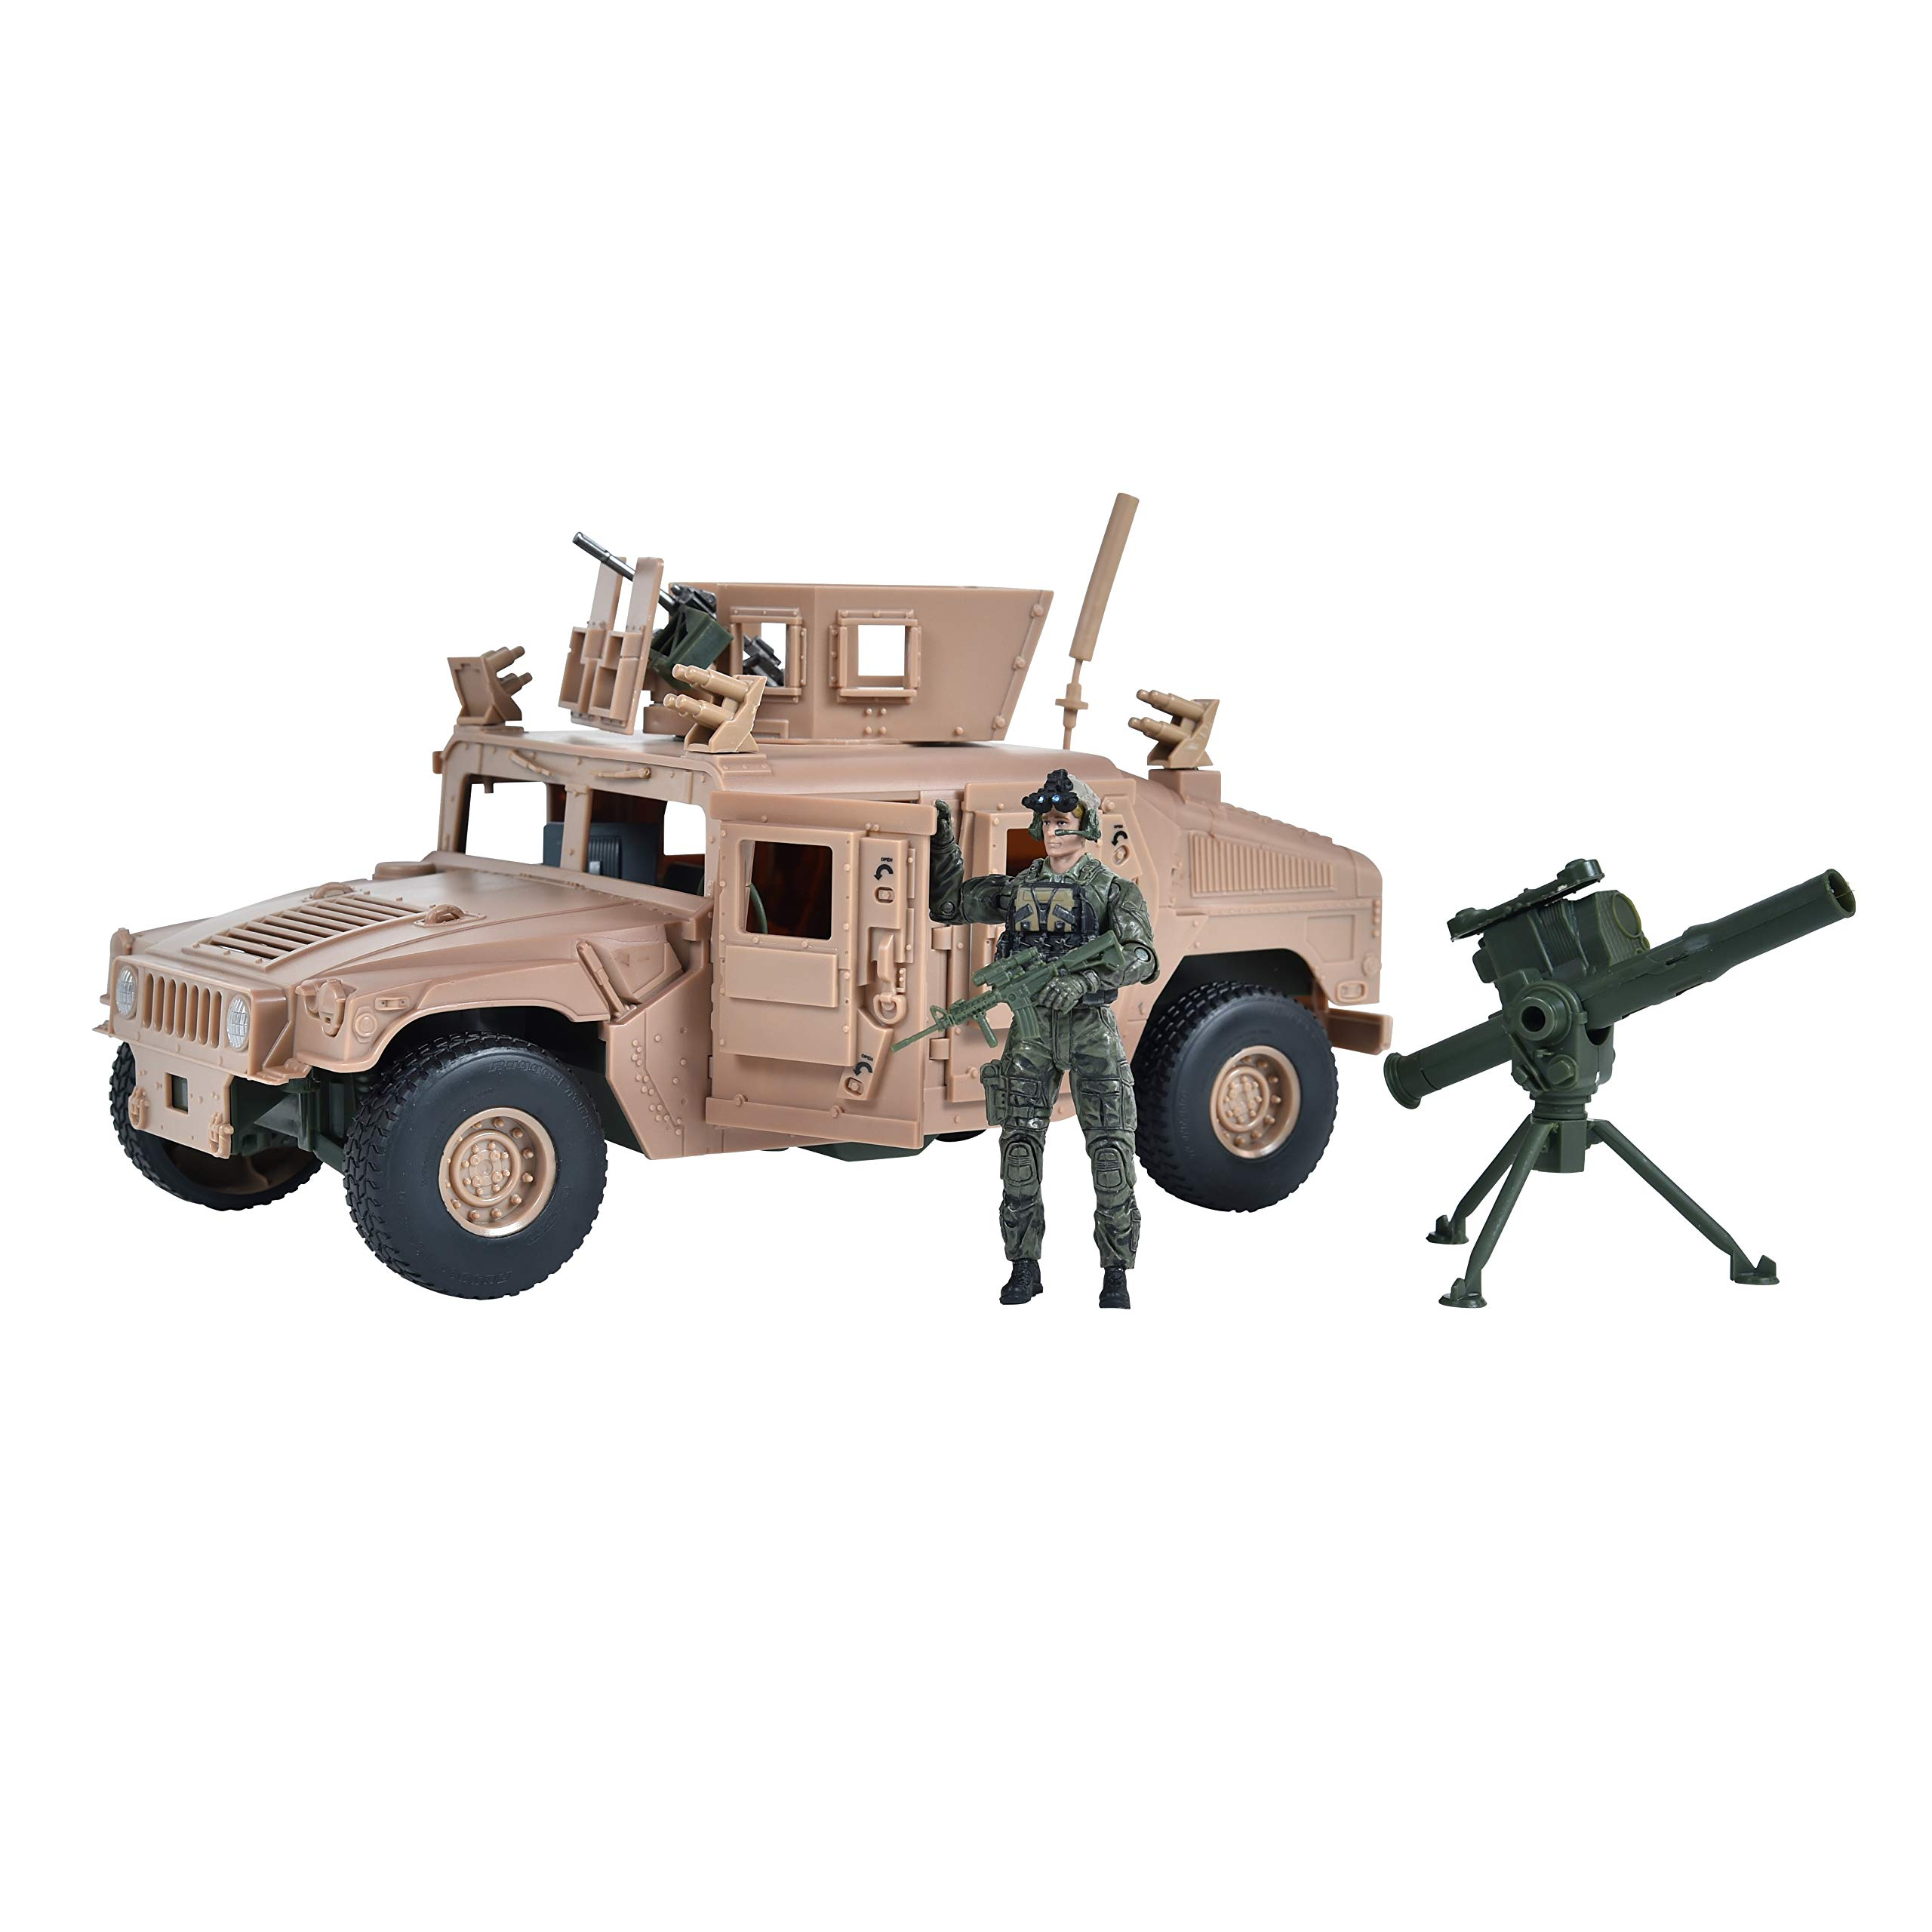 Sunny Days Entertainment Elite Force 1:18 Scale Military M1114 Up-Armored Humvee Vehicle with 14-Point Articulatoin Action Figure, Rotating Gun Turret and Machine Gun Play Set by Sunny Days Entertainment